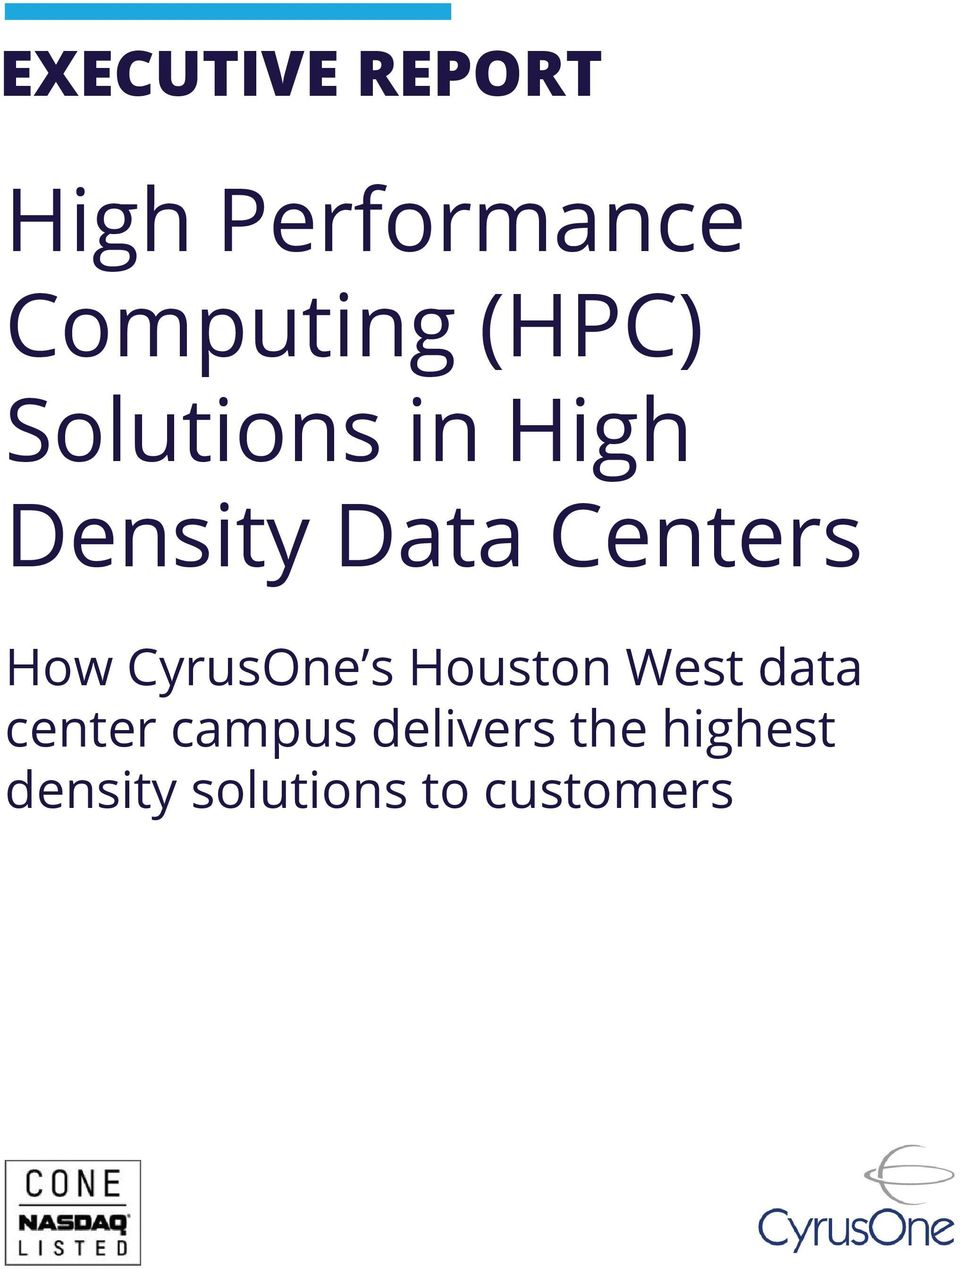 How s Houston West data center campus